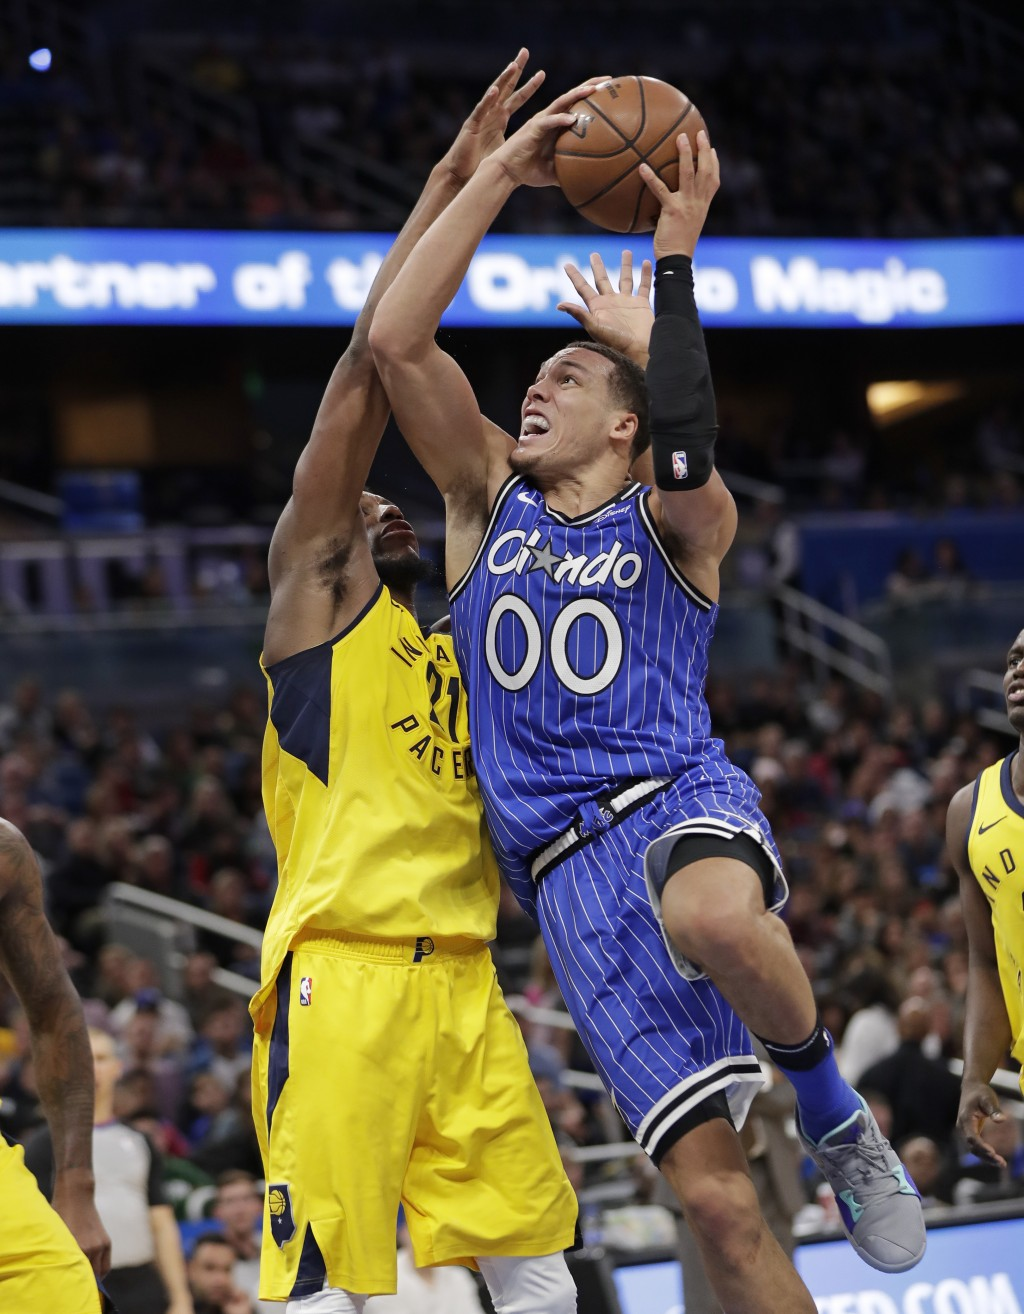 Orlando Magic's Aaron Gordon (00) goes up for a shot against Indiana Pacers' Thaddeus Young during the second half of an NBA basketball game Friday, D...